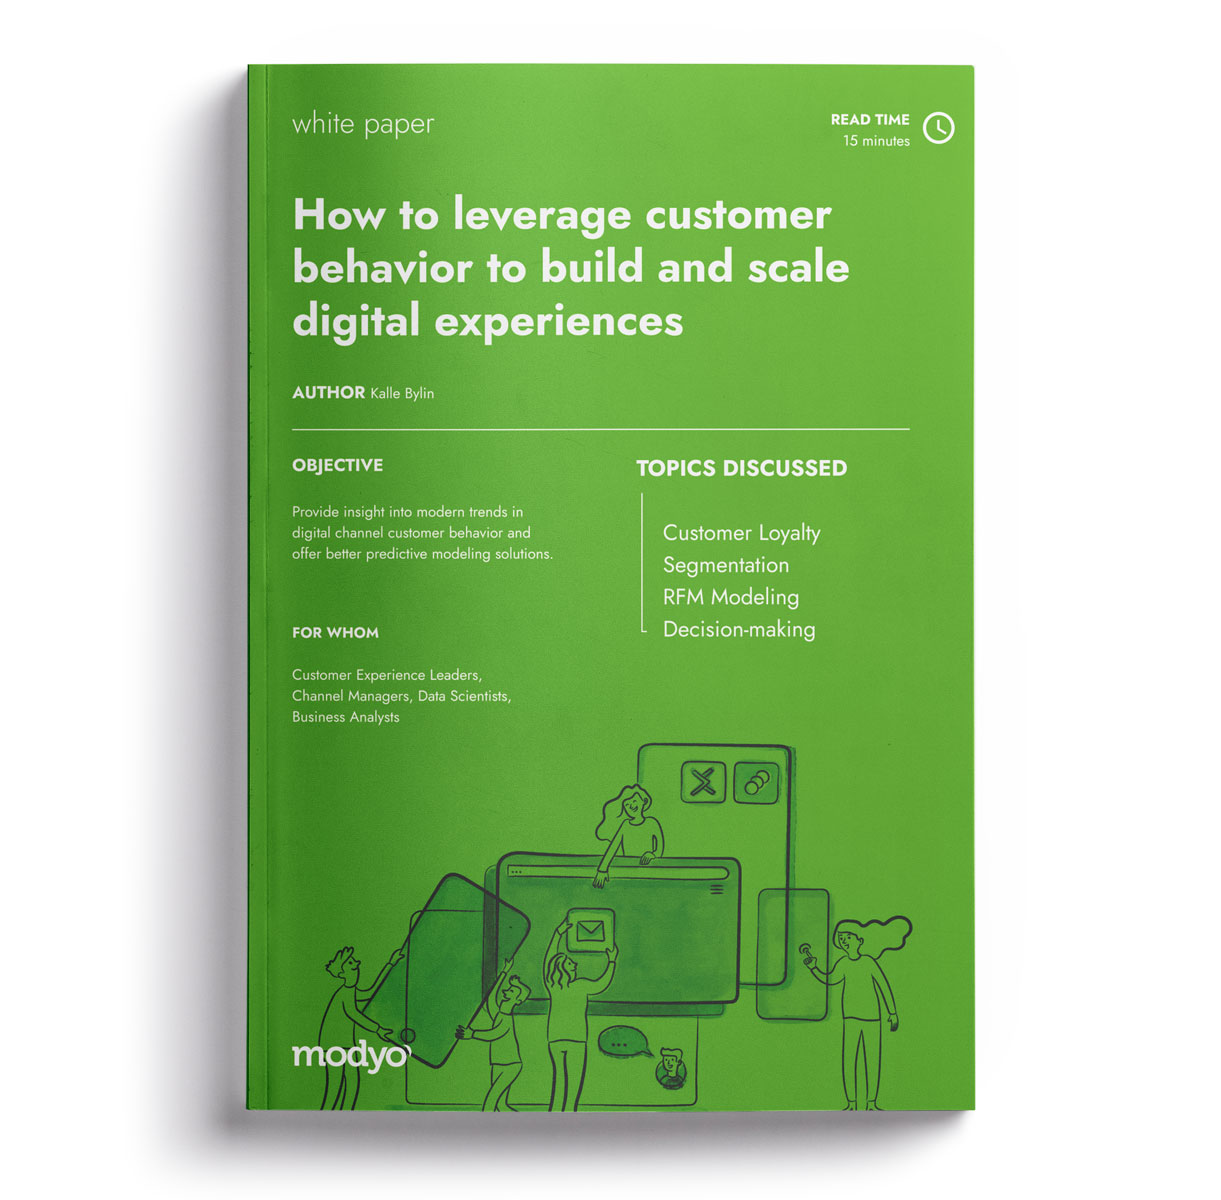 How to leverage customer behavior to build and scale digital experiences